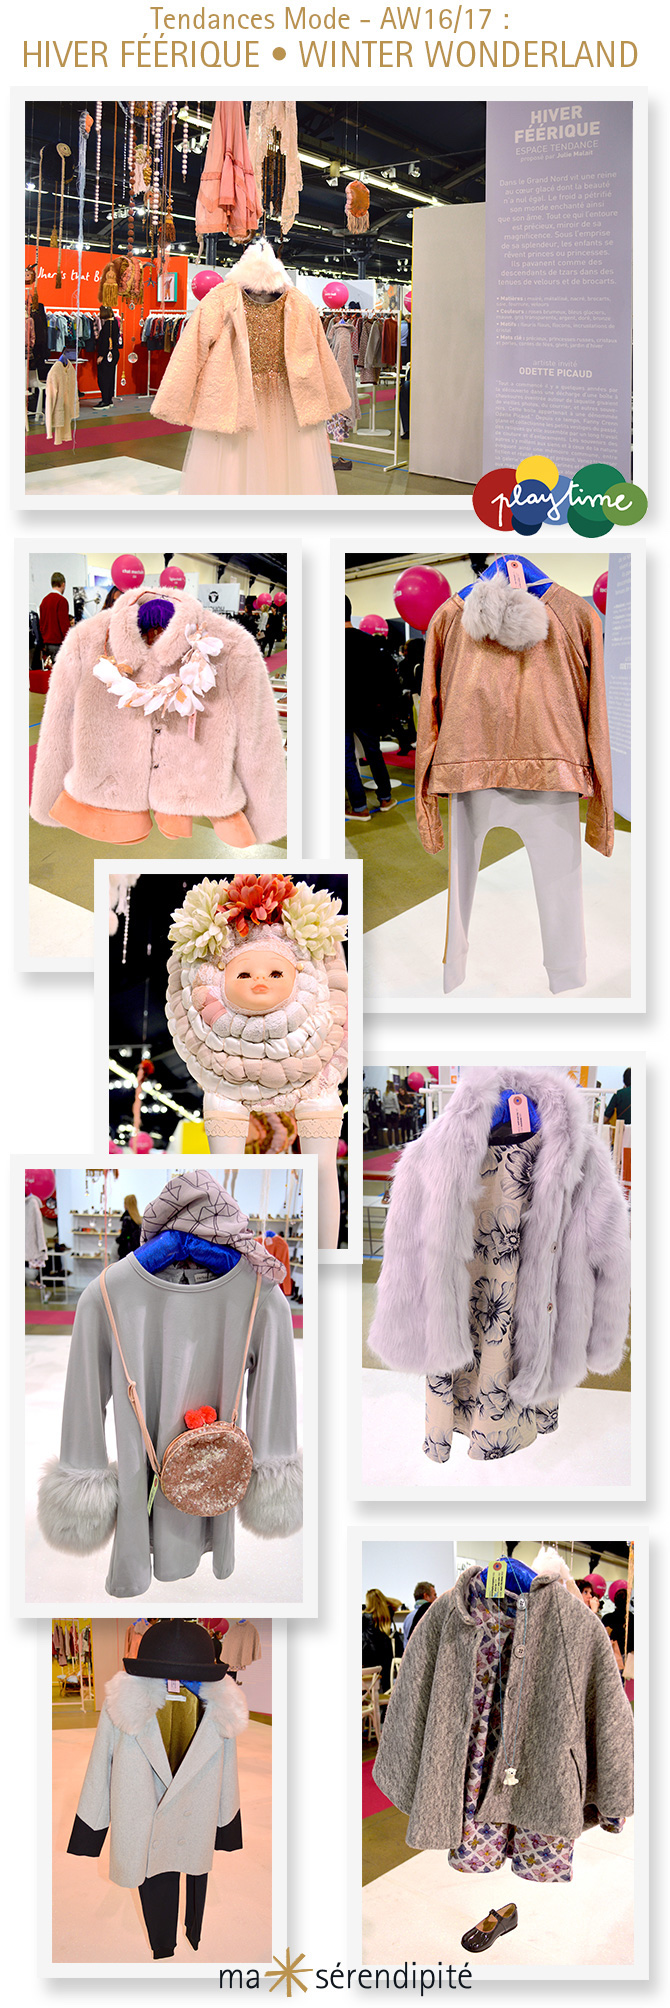 PLAYTIME_PARIS_19E_Tendances-MODE-Winter-Wonderland